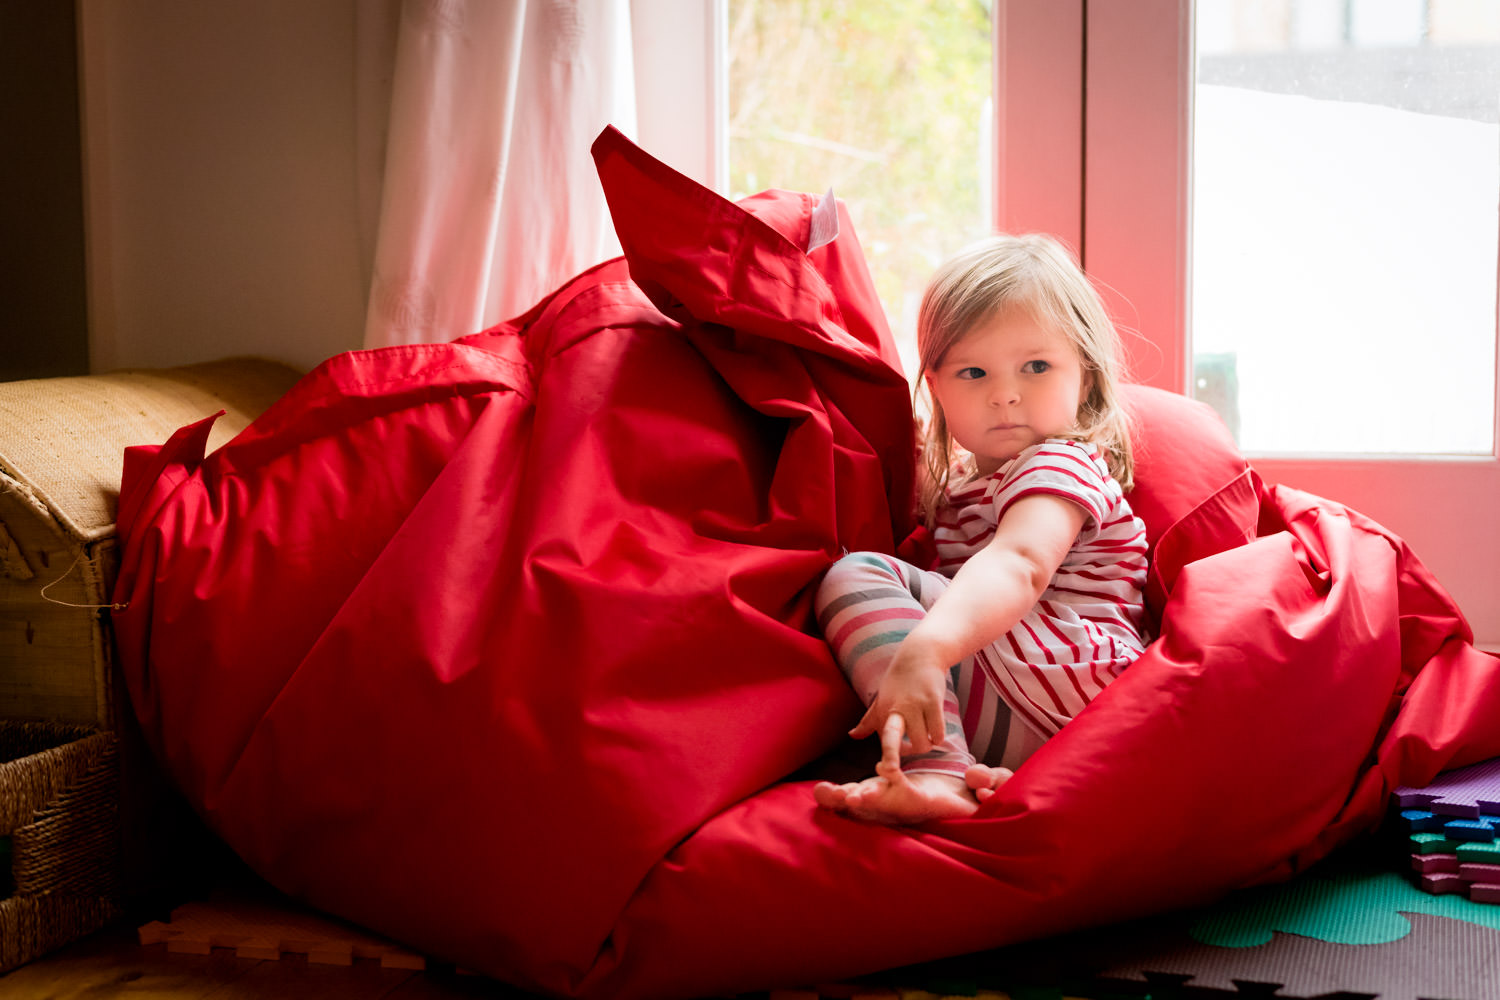 Girl sat on extra large red bean bag